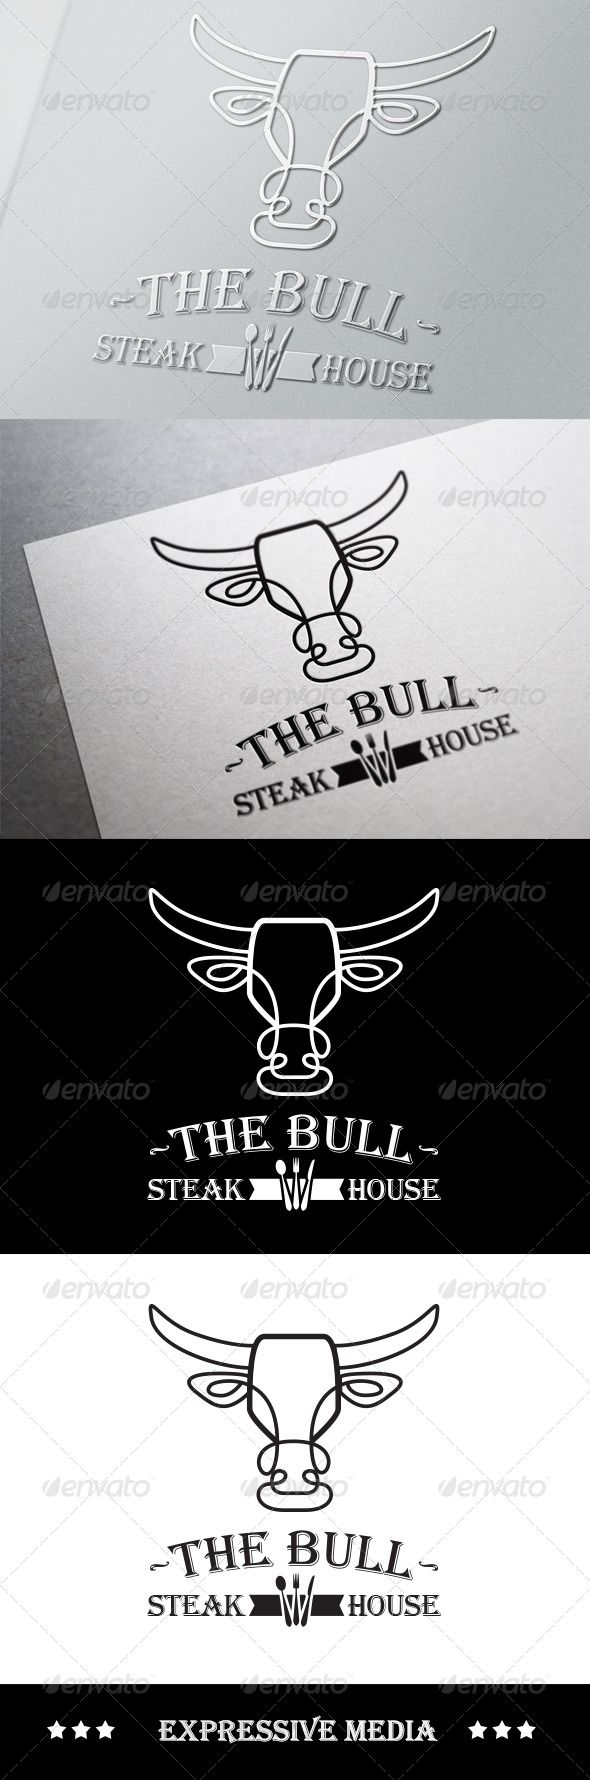 The Bull - Steak House  #GraphicRiver         Brand your Steak house or Country Kitchen with the ultimate logo! Wow your guests with your amazing, memorable logo and show them your business is one to be trusted with your unique, family friendly branding!